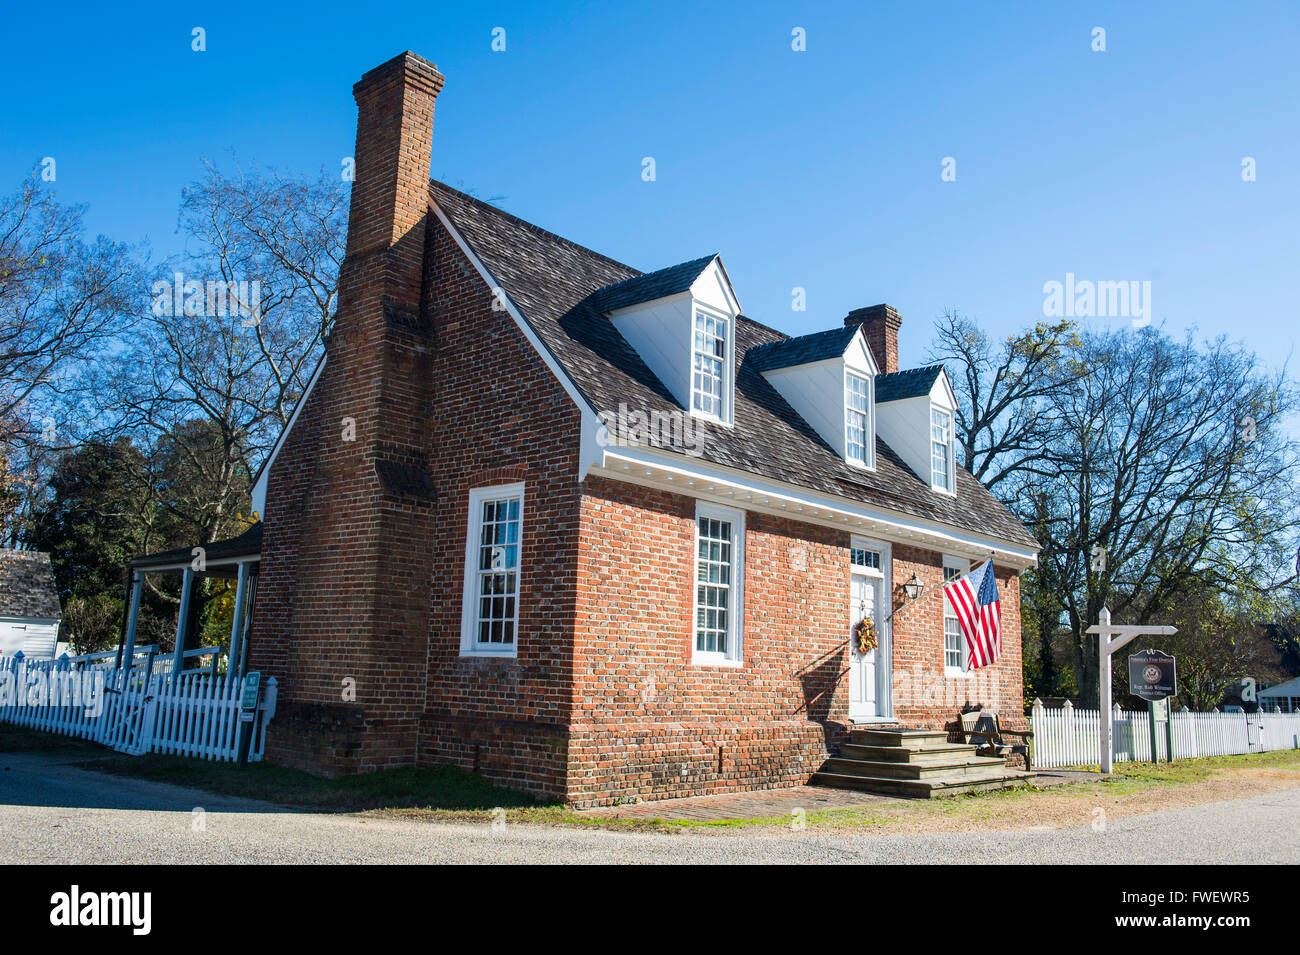 Historical houses in historical Yorktown, Virginia, United States of America, North America - Stock Image